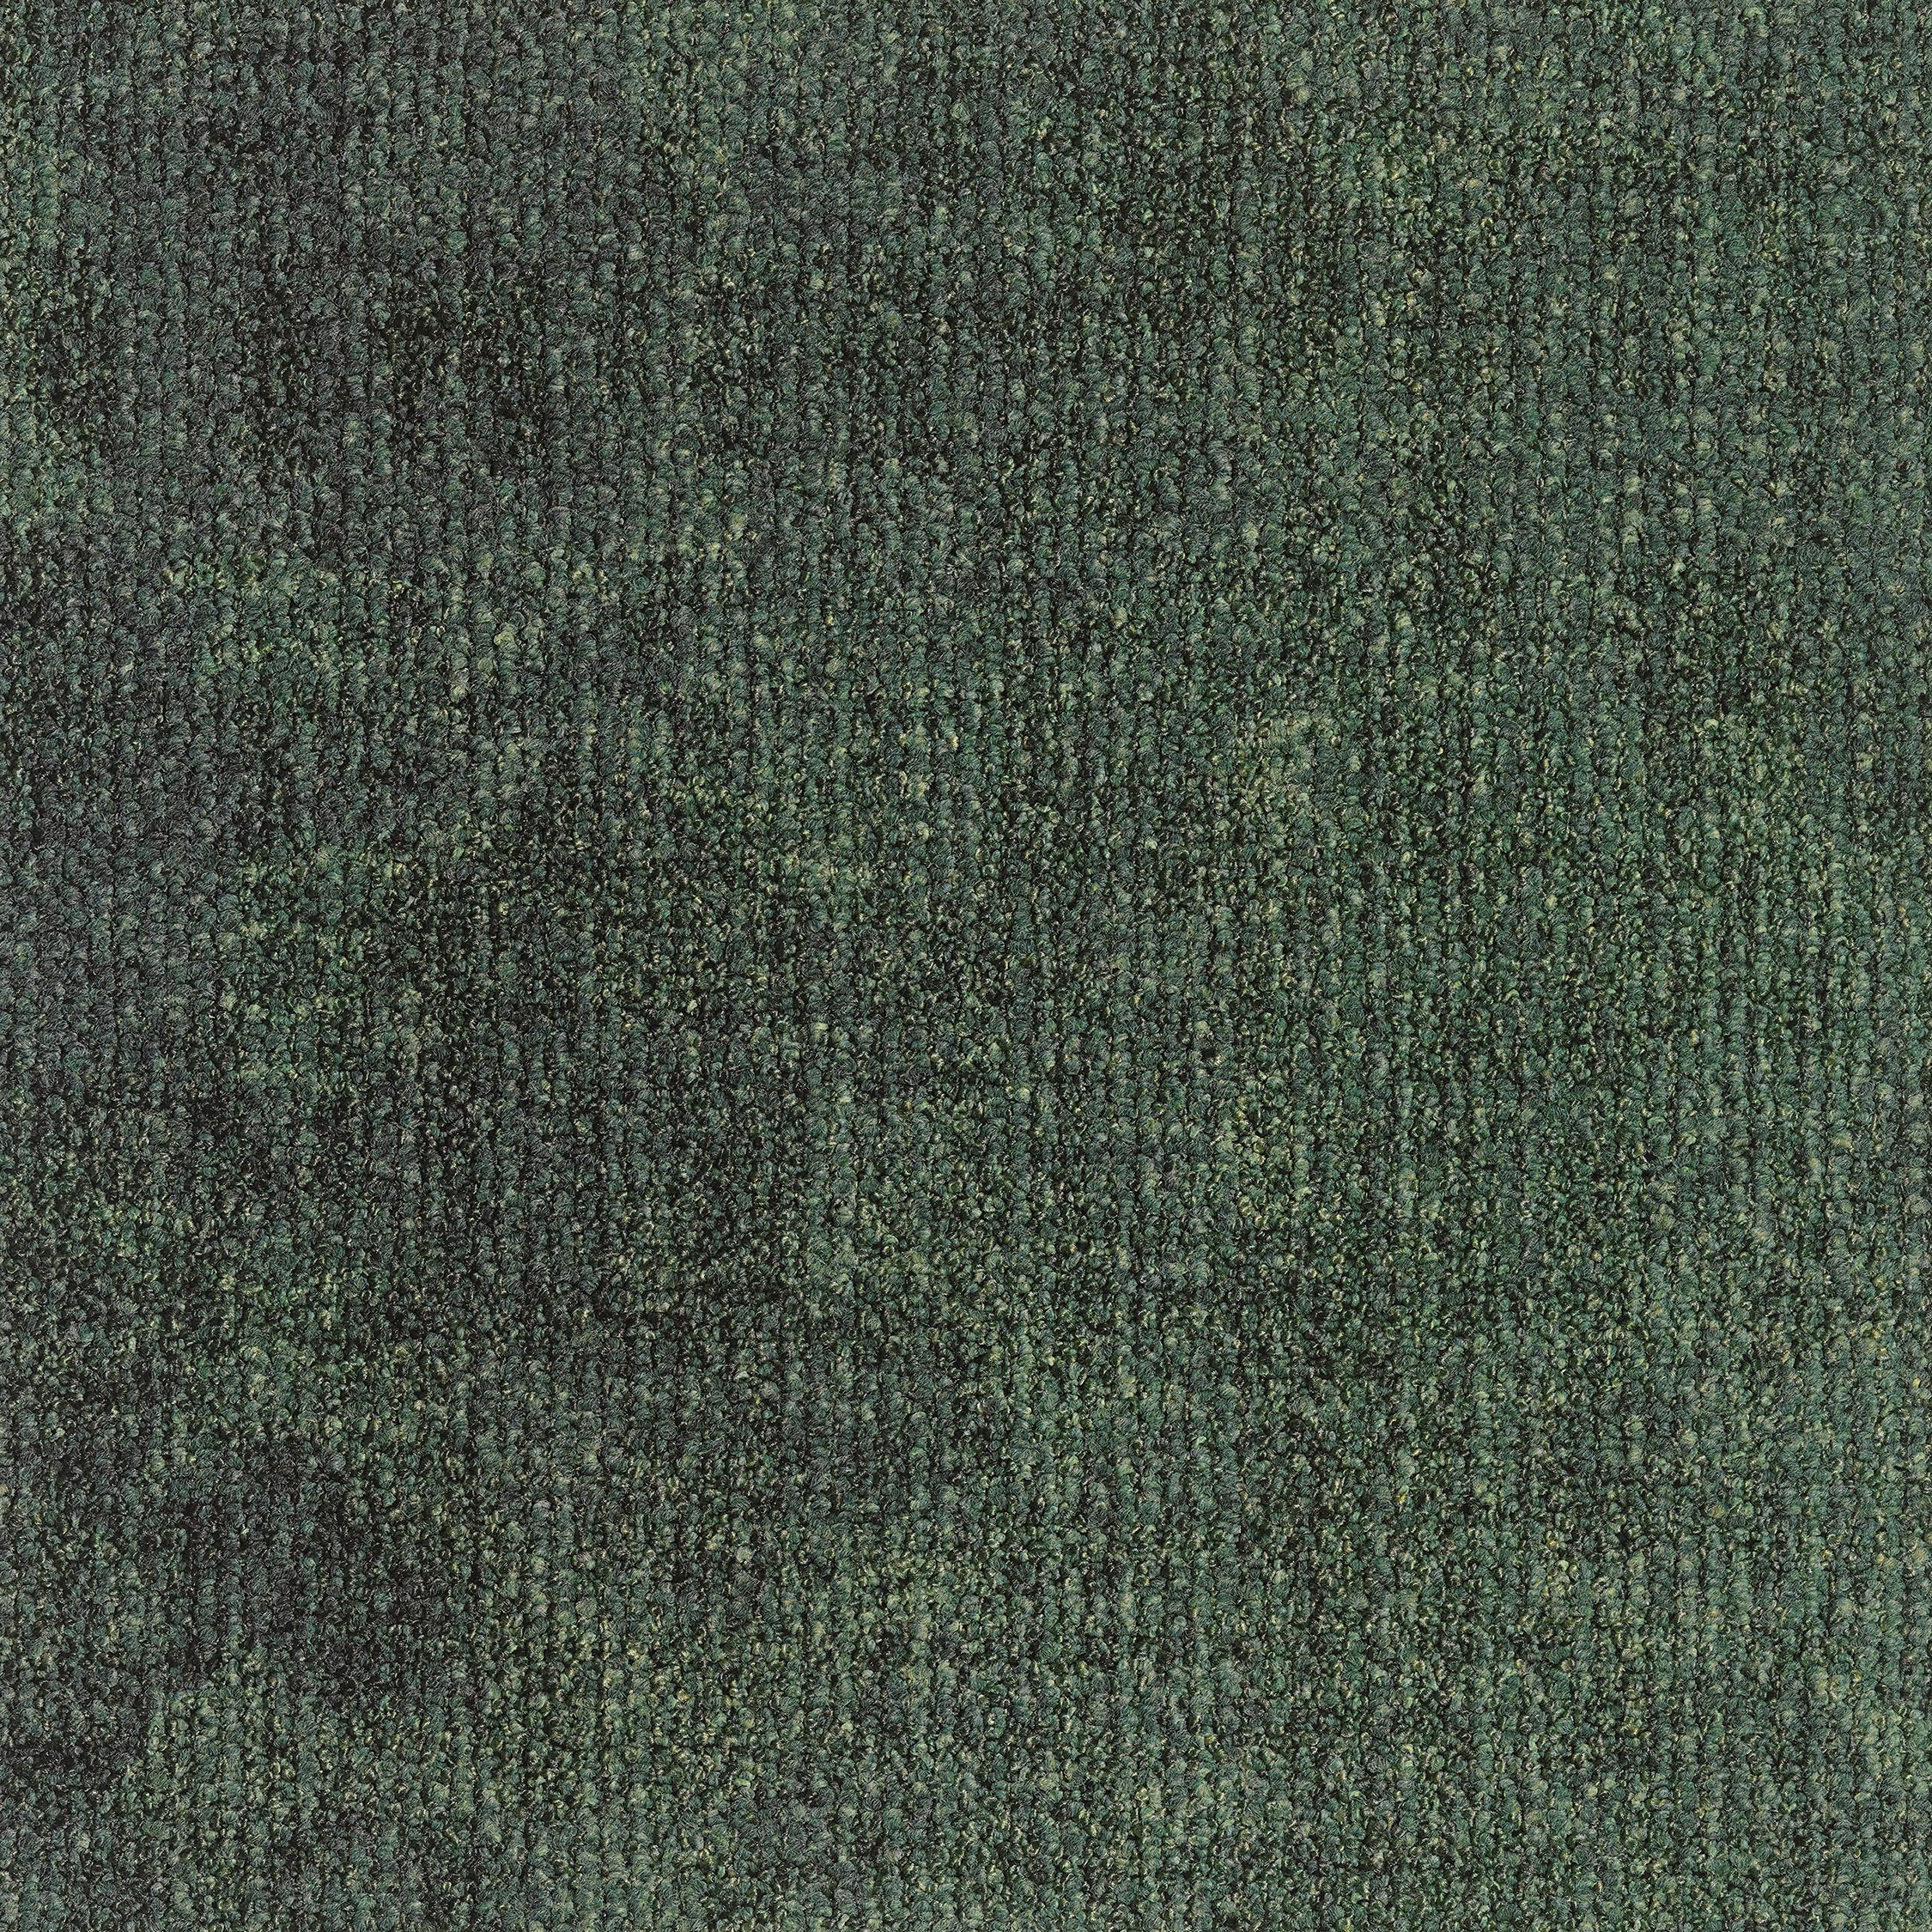 ReForm Transition Mix Leaf dark green/green 5500